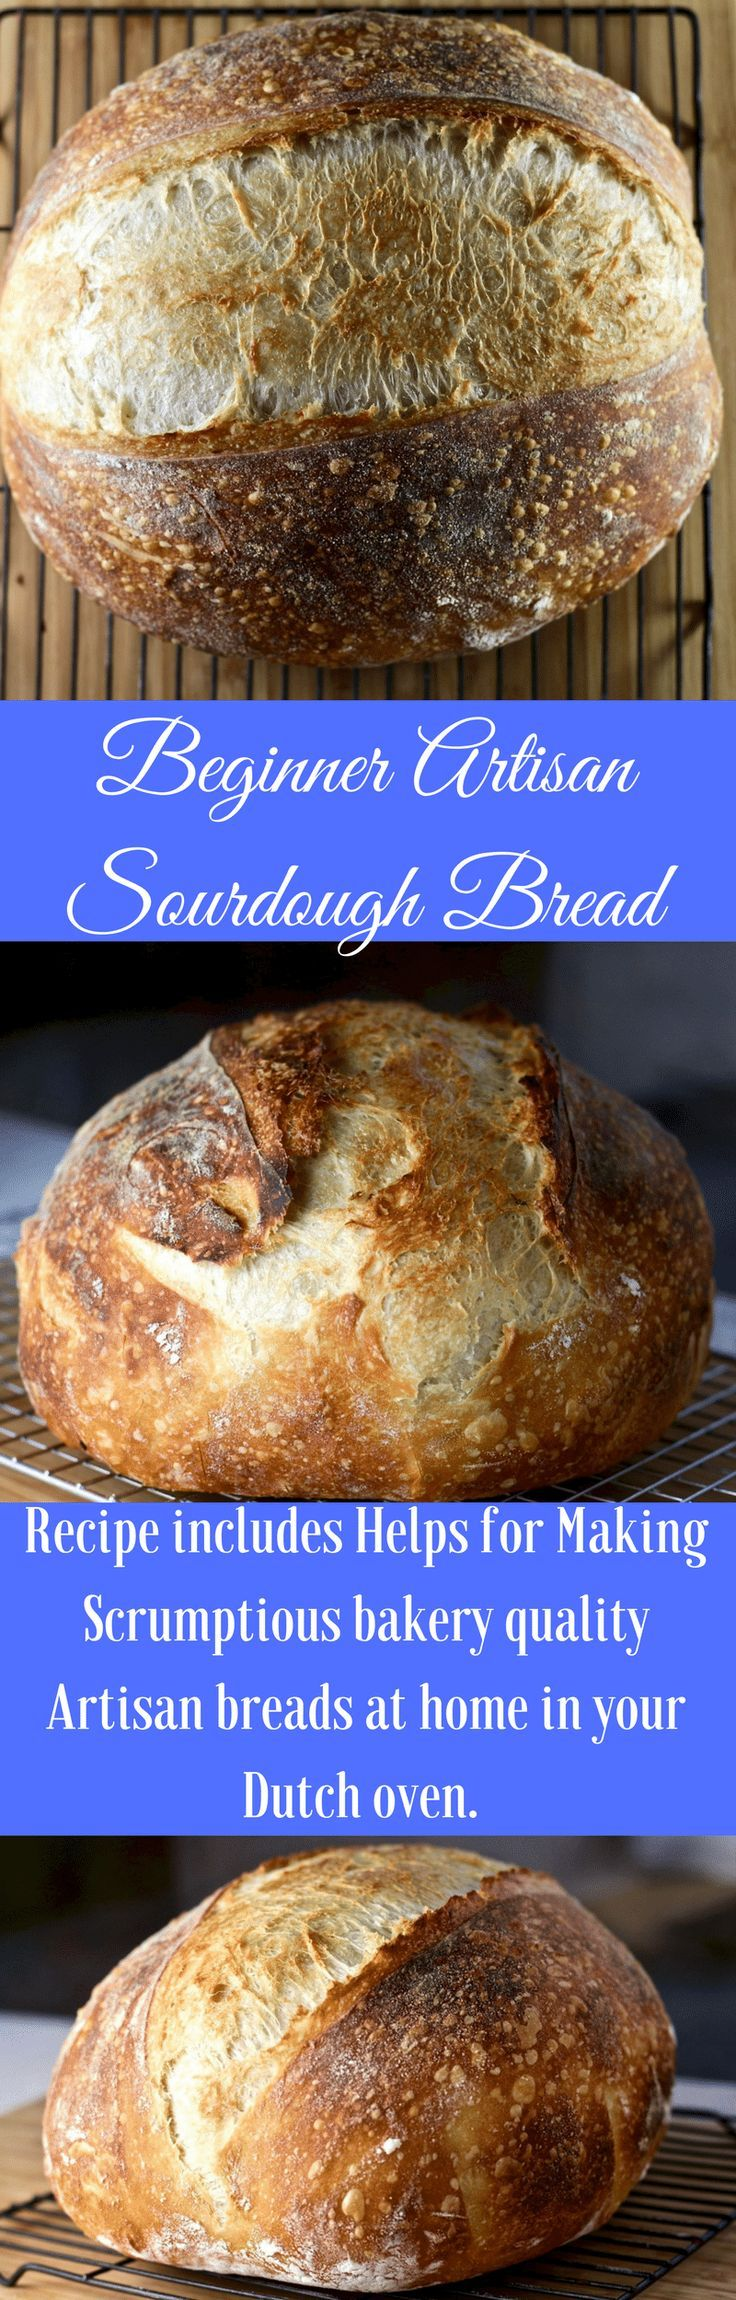 Beginner Artisan Sourdough Bread Recipe has a long tutorial full of tips to help new bakers with the process of baking Artisan sourdough breads with the Long rise, stretch and fold method. Follow this recipe for consistent loaves of fantastic bread your family will love! #sourdough #baking #breadbaking #artisanbread #tutorial